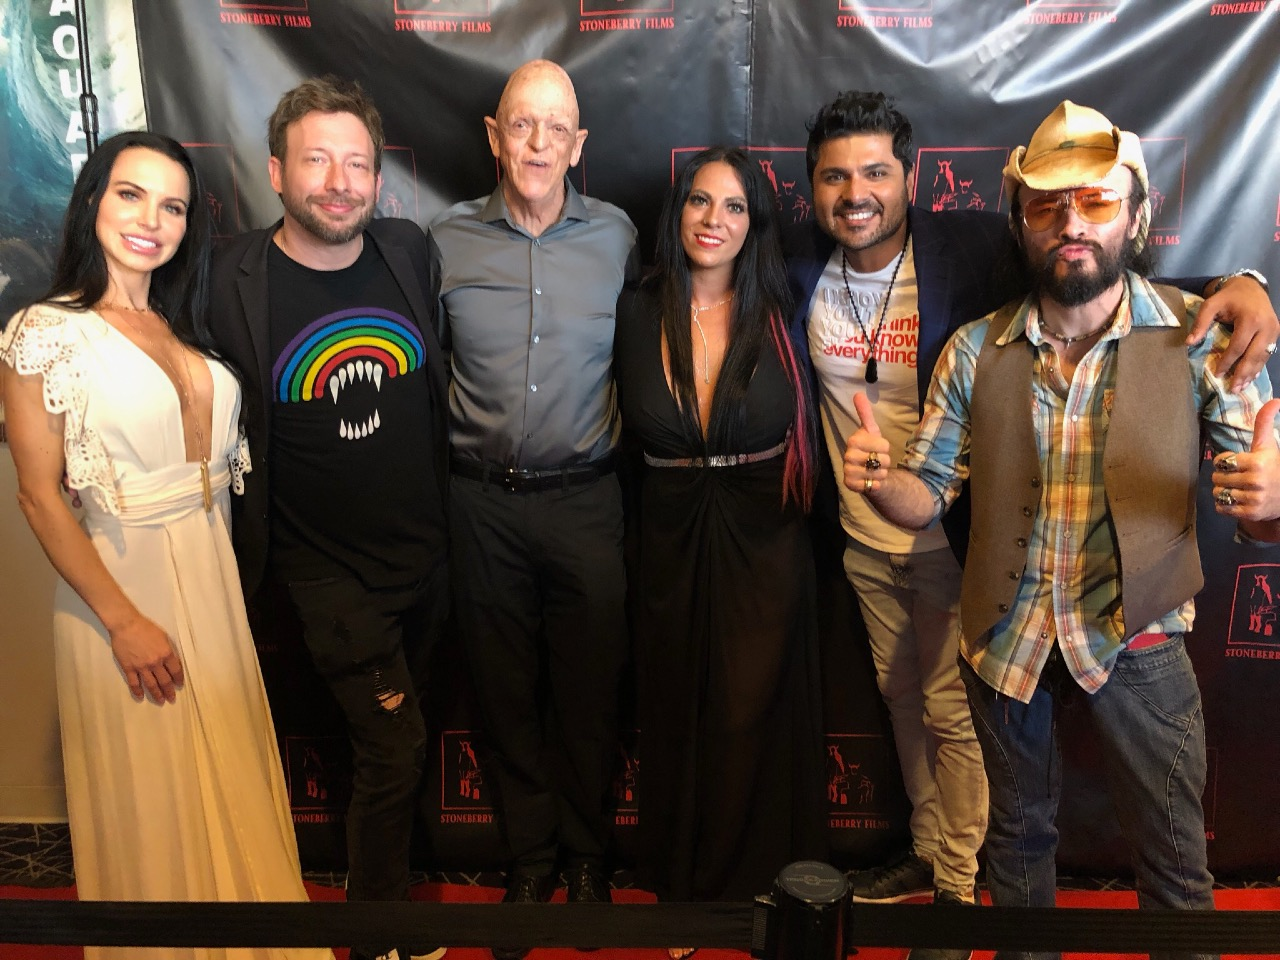 Erin Marie Garrett at Midnight Devils premiere with cast & crew including Michael Berryman and Billy Blair